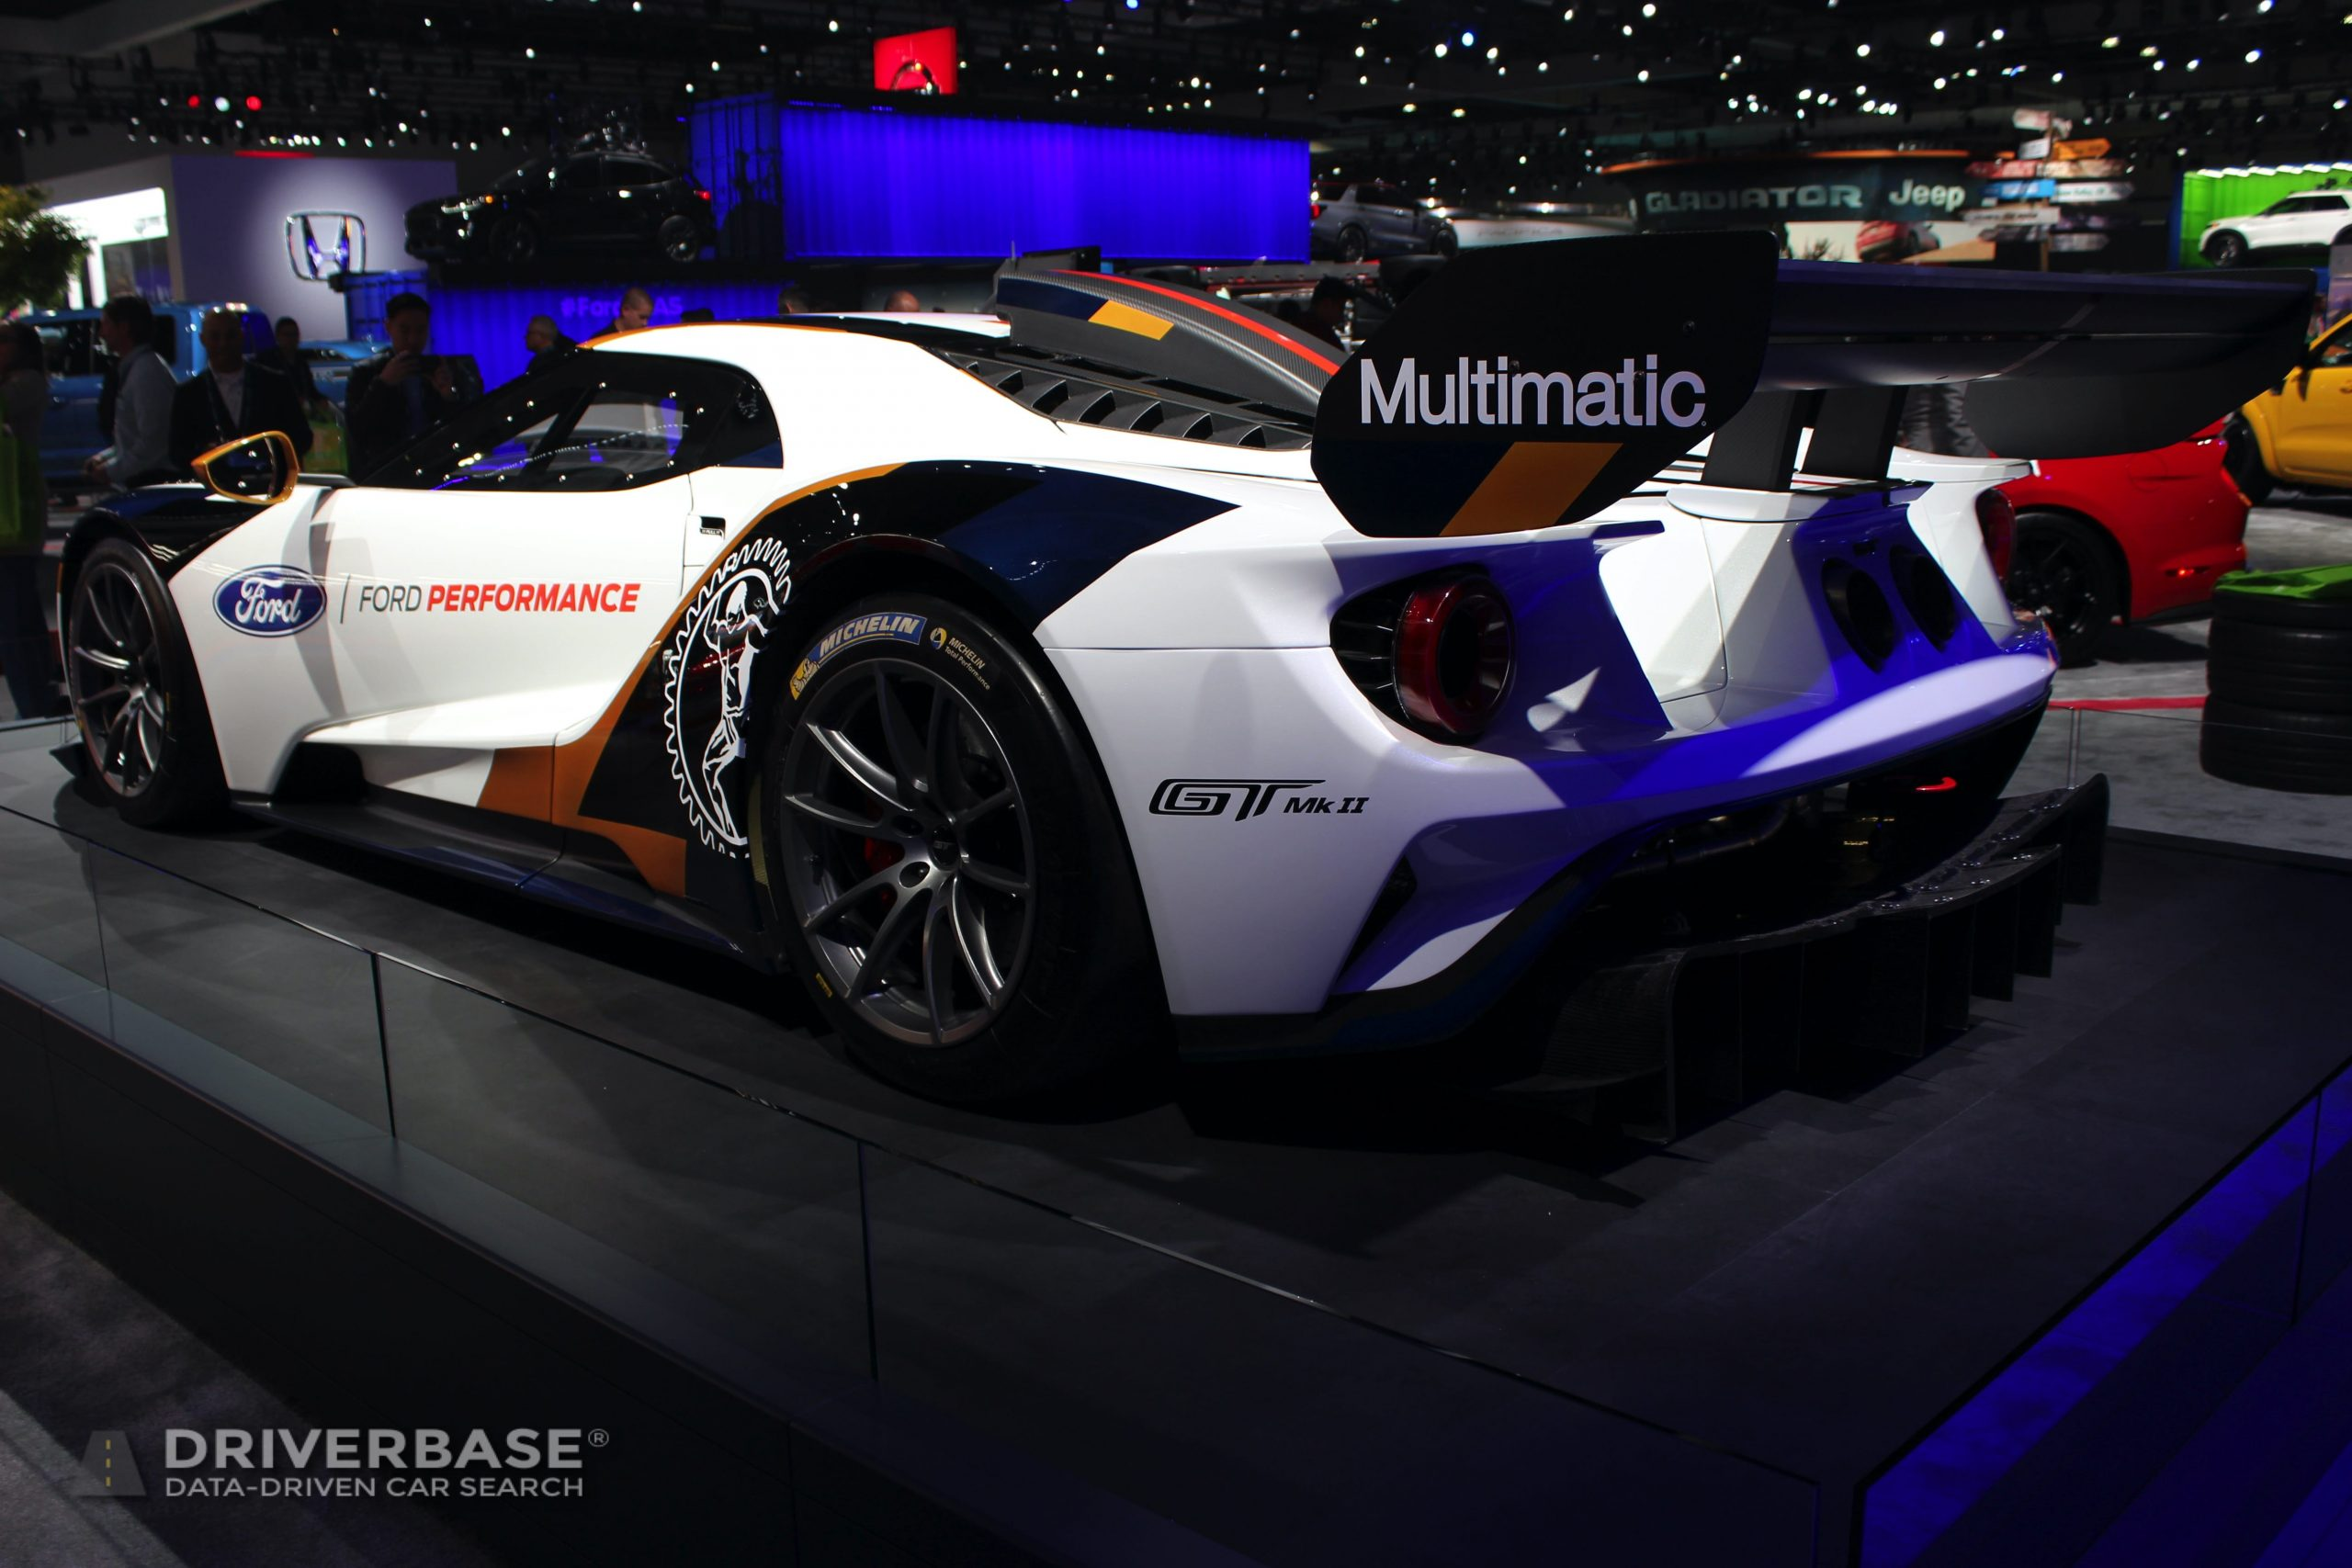 Ford GT MKII at the 2019 Los Angeles Auto Show